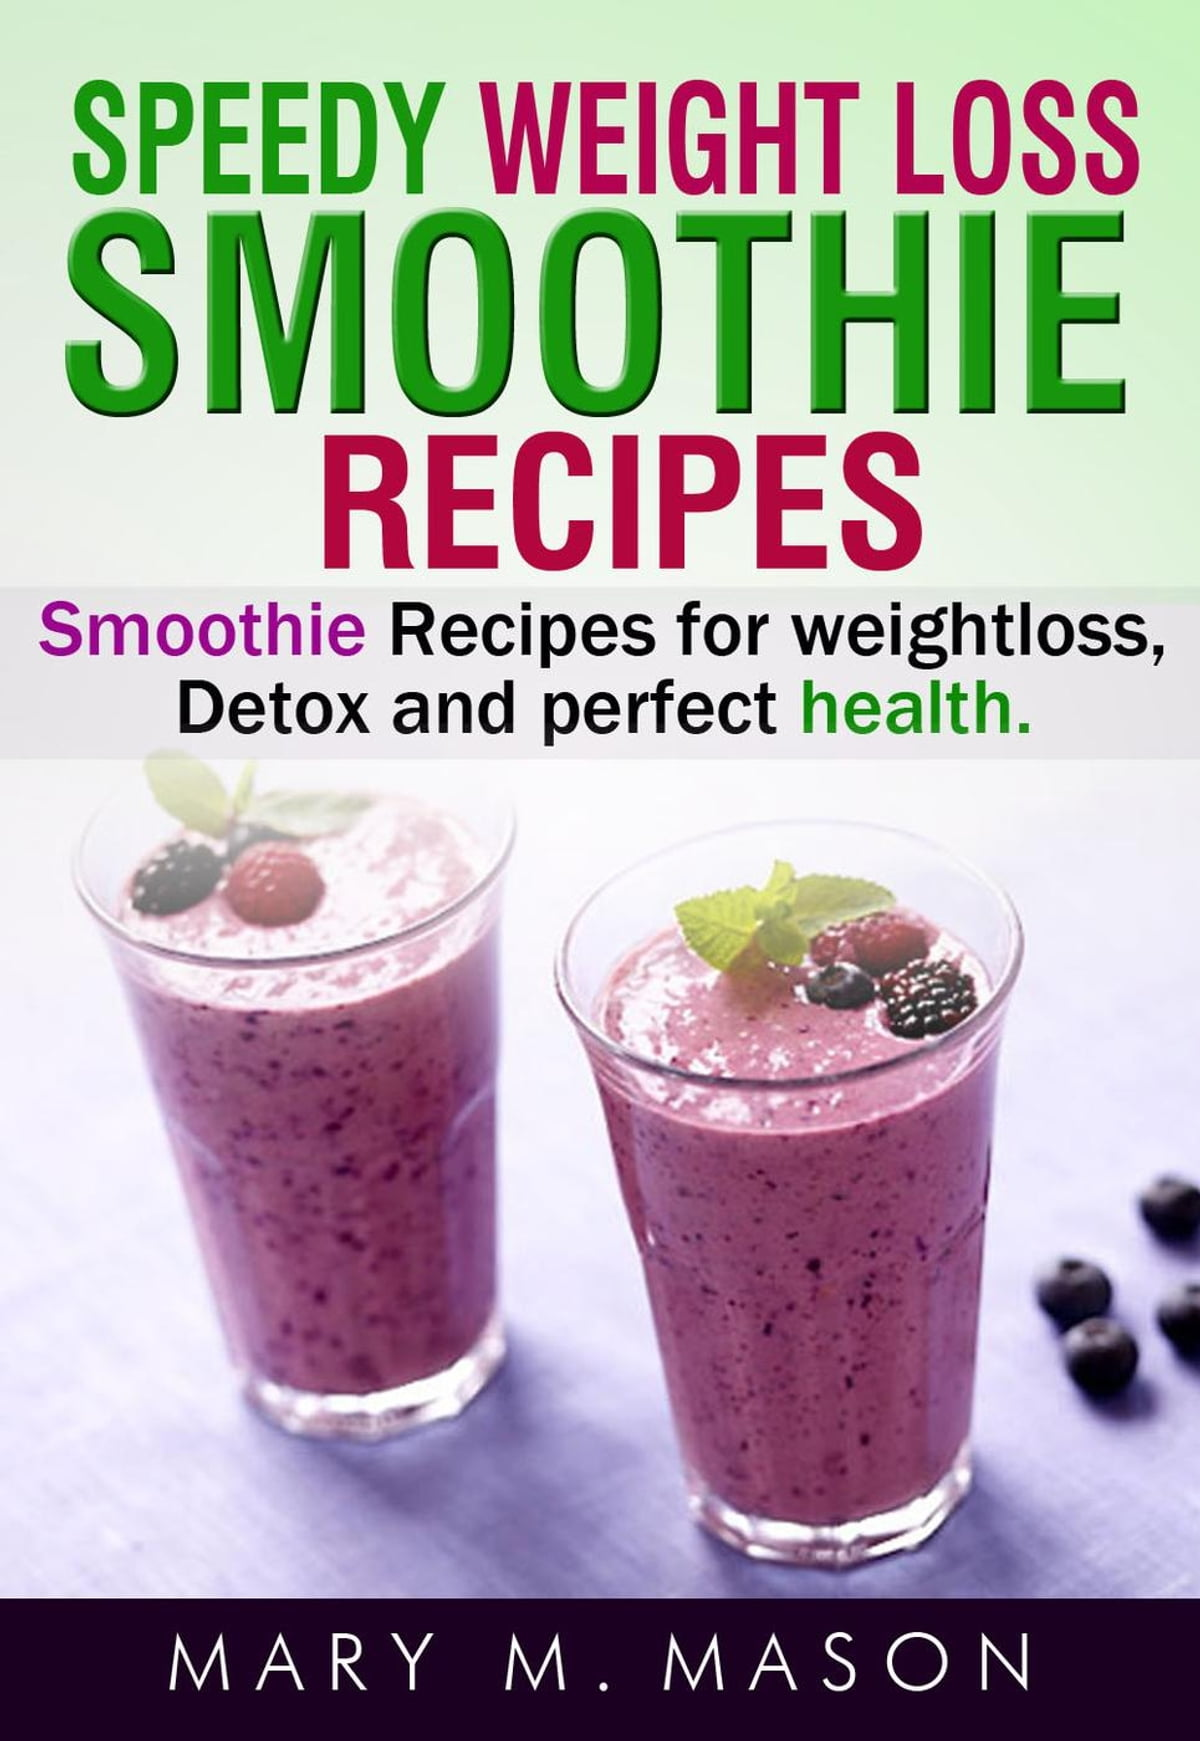 Speedy Weight Loss Smoothie Recipes Smoothie Recipes For Weight Loss Detox Perfect Health Ebook By Mary M Mason Rakuten Kobo